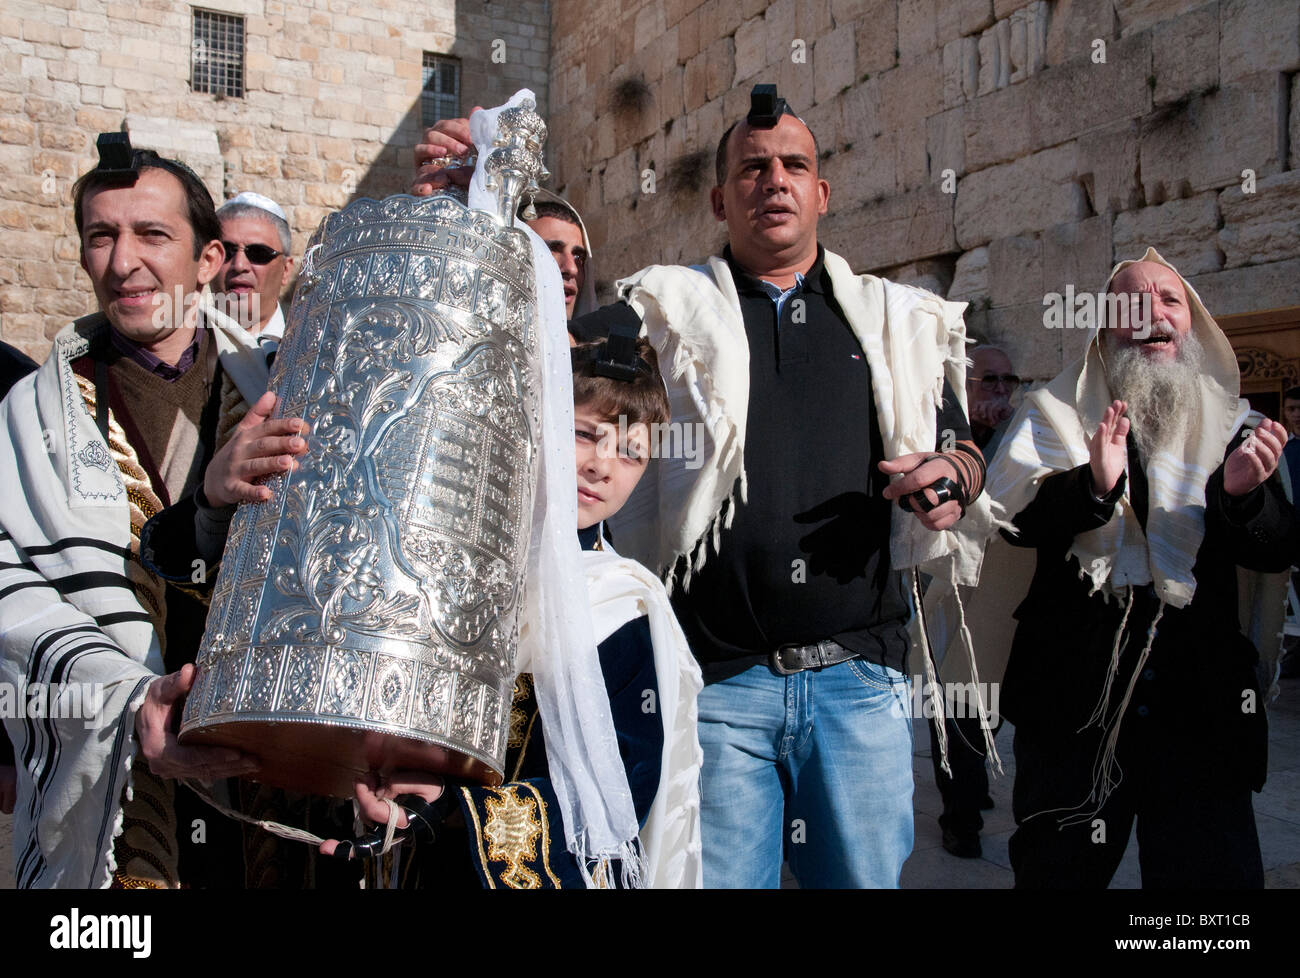 Western Wall. youngster carrying torah scrolls on his bar mitzvah ceremony. Jerusalem Old City - Stock Image